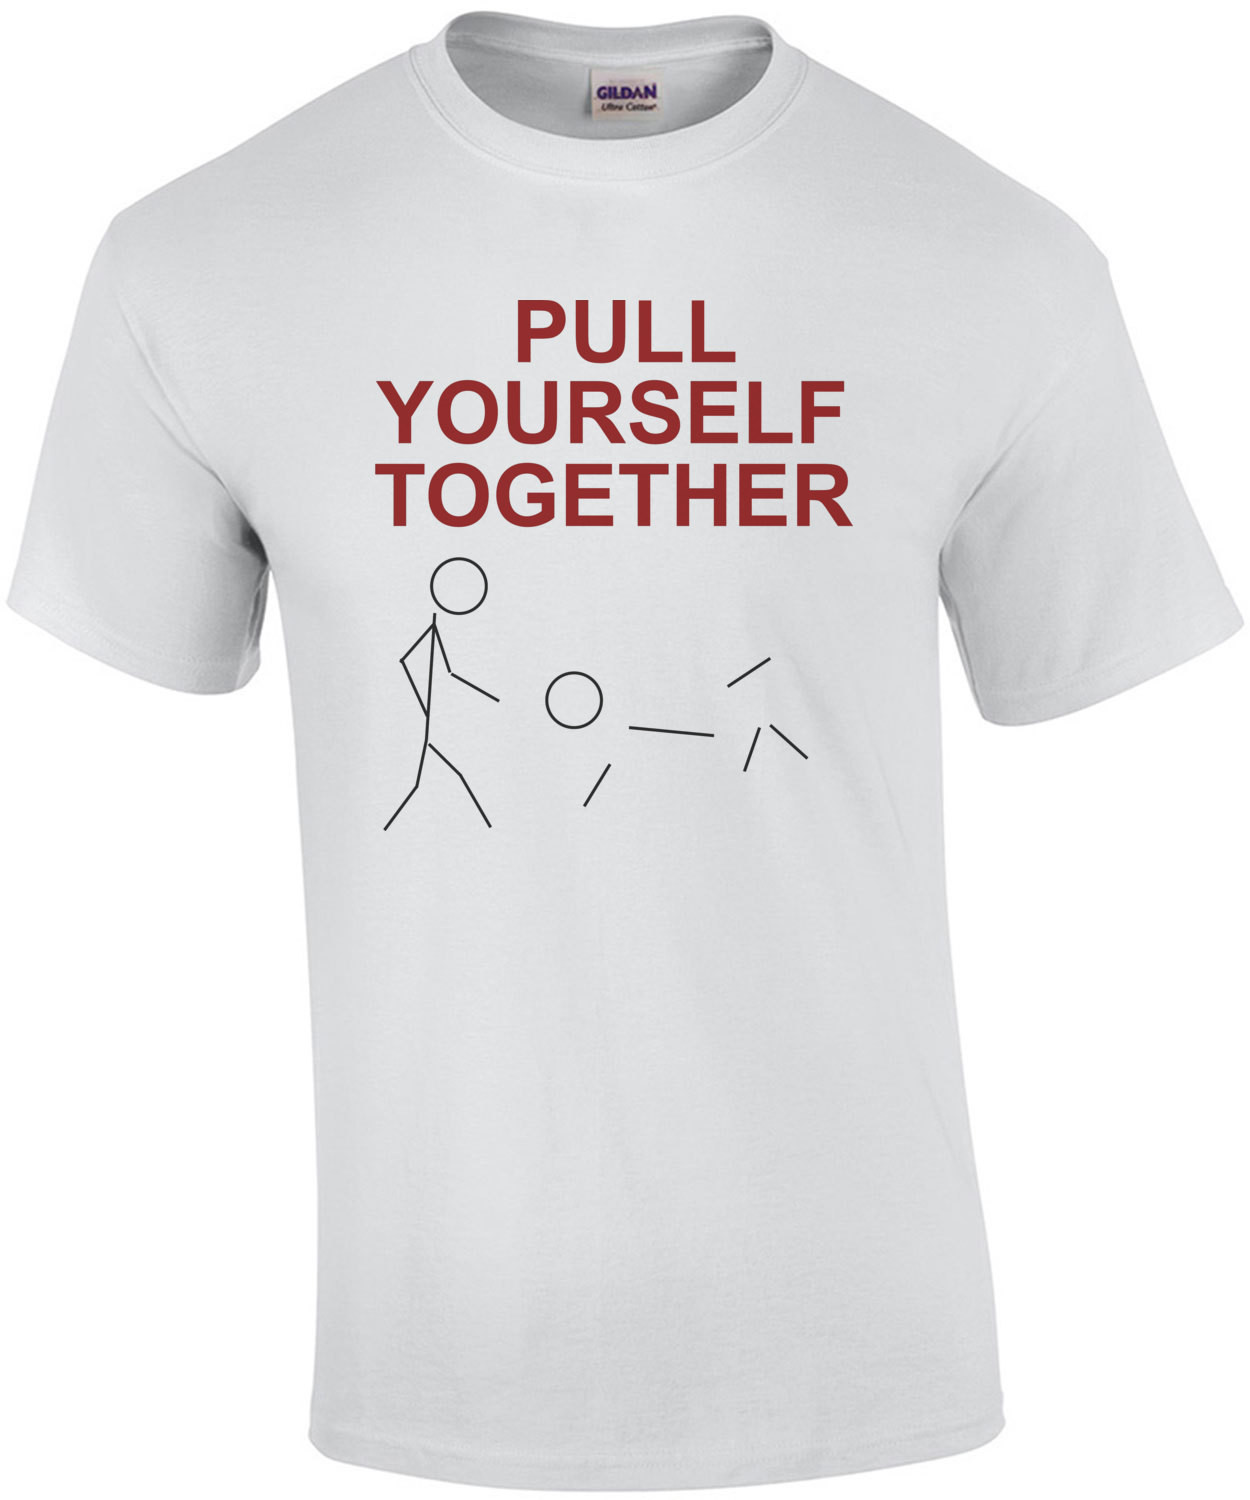 Pull Yourself Together - Funny Stick Figure